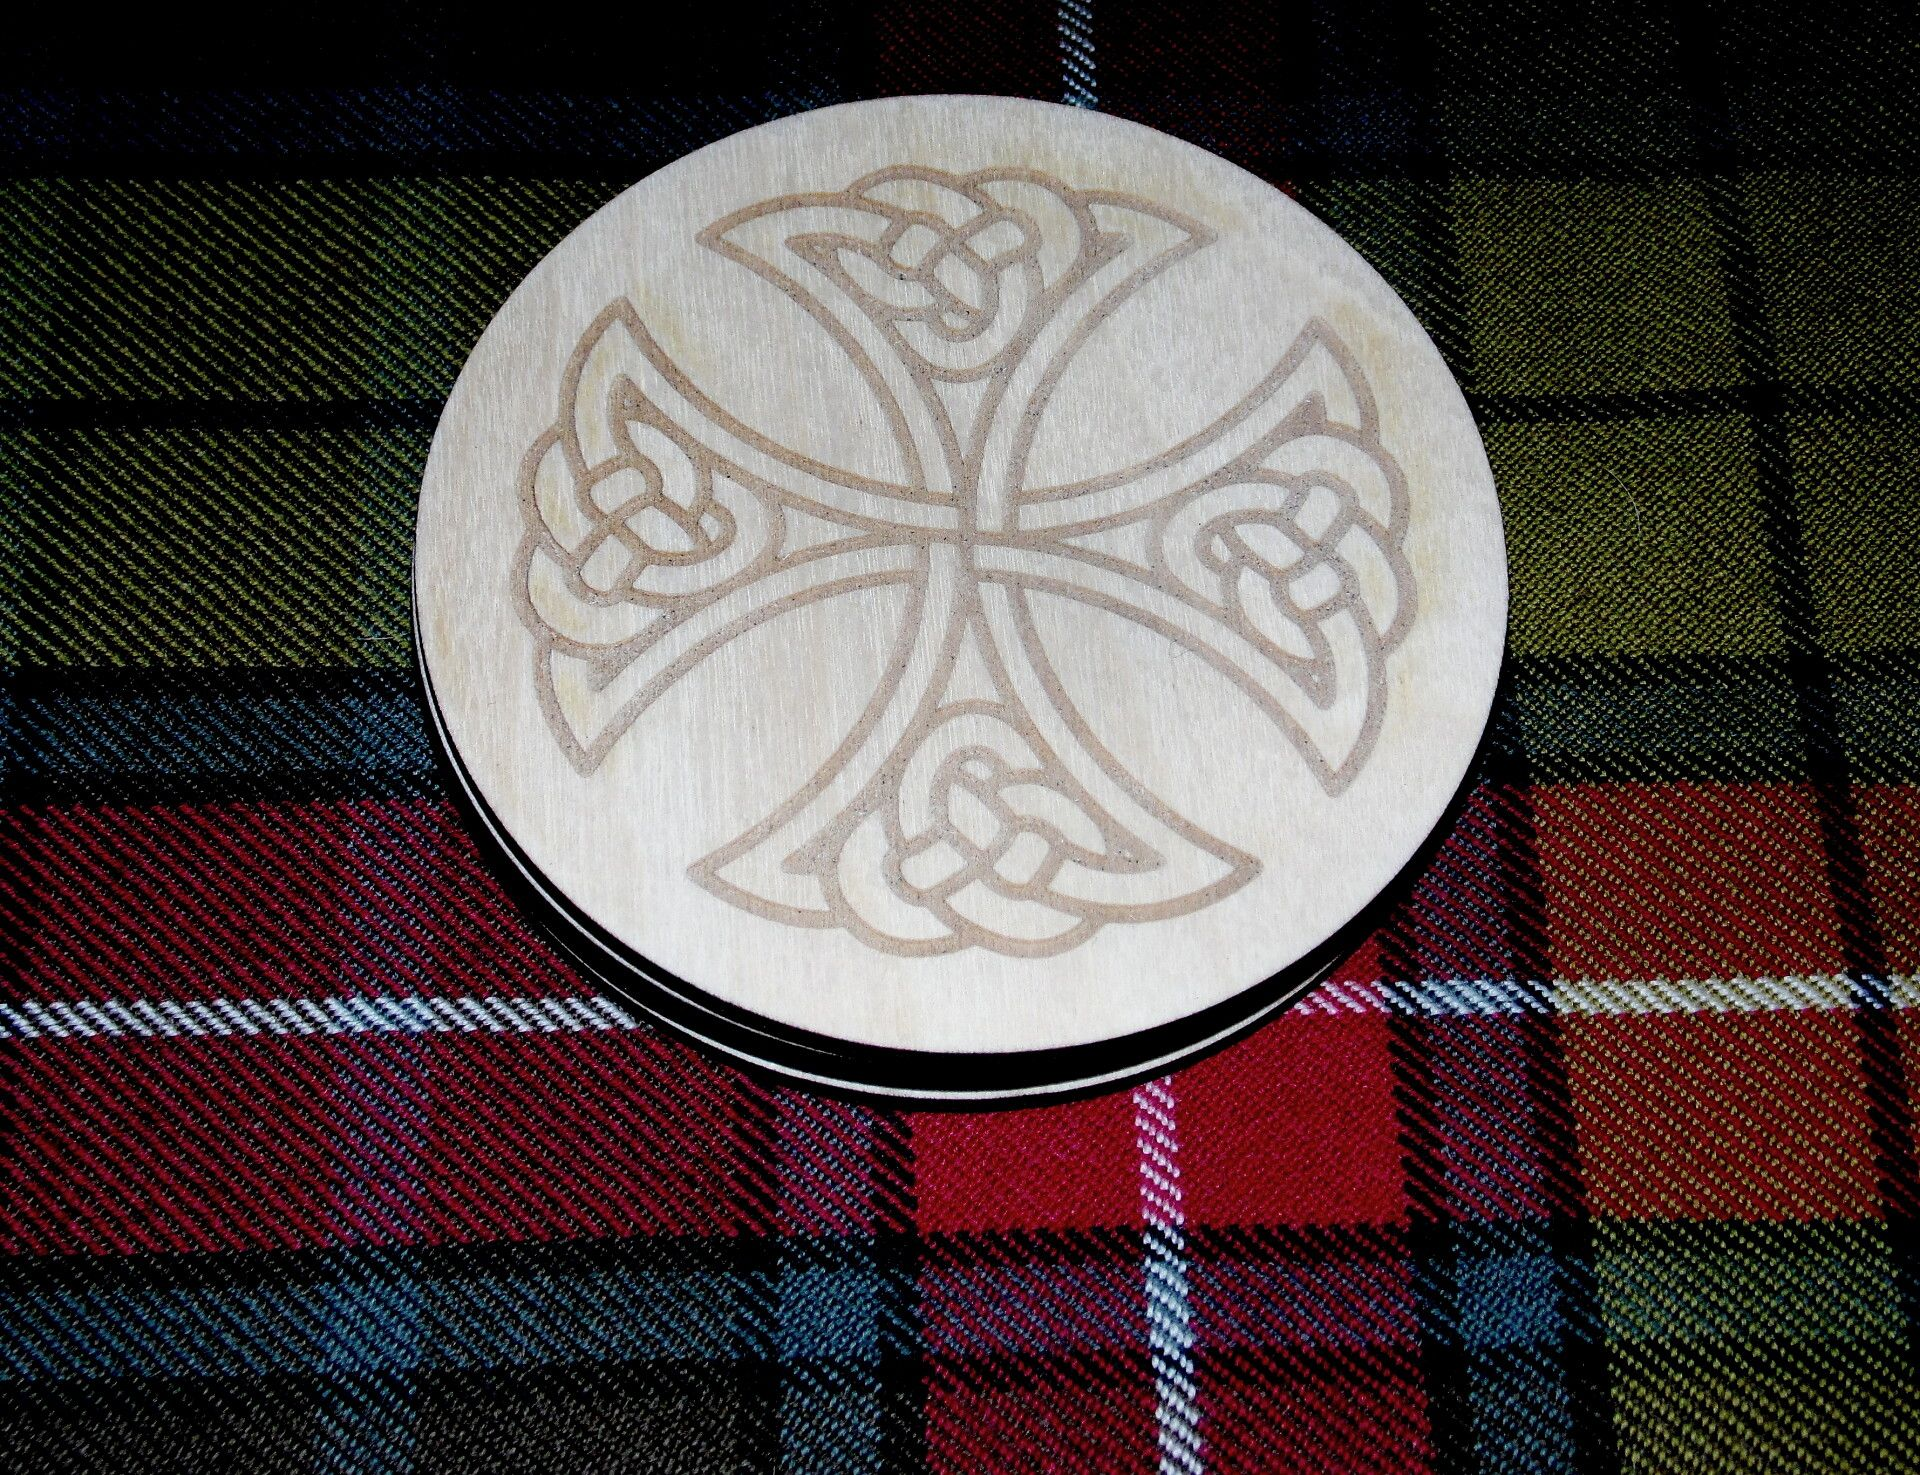 Celtic Cross #2 engraved coaster set x 4